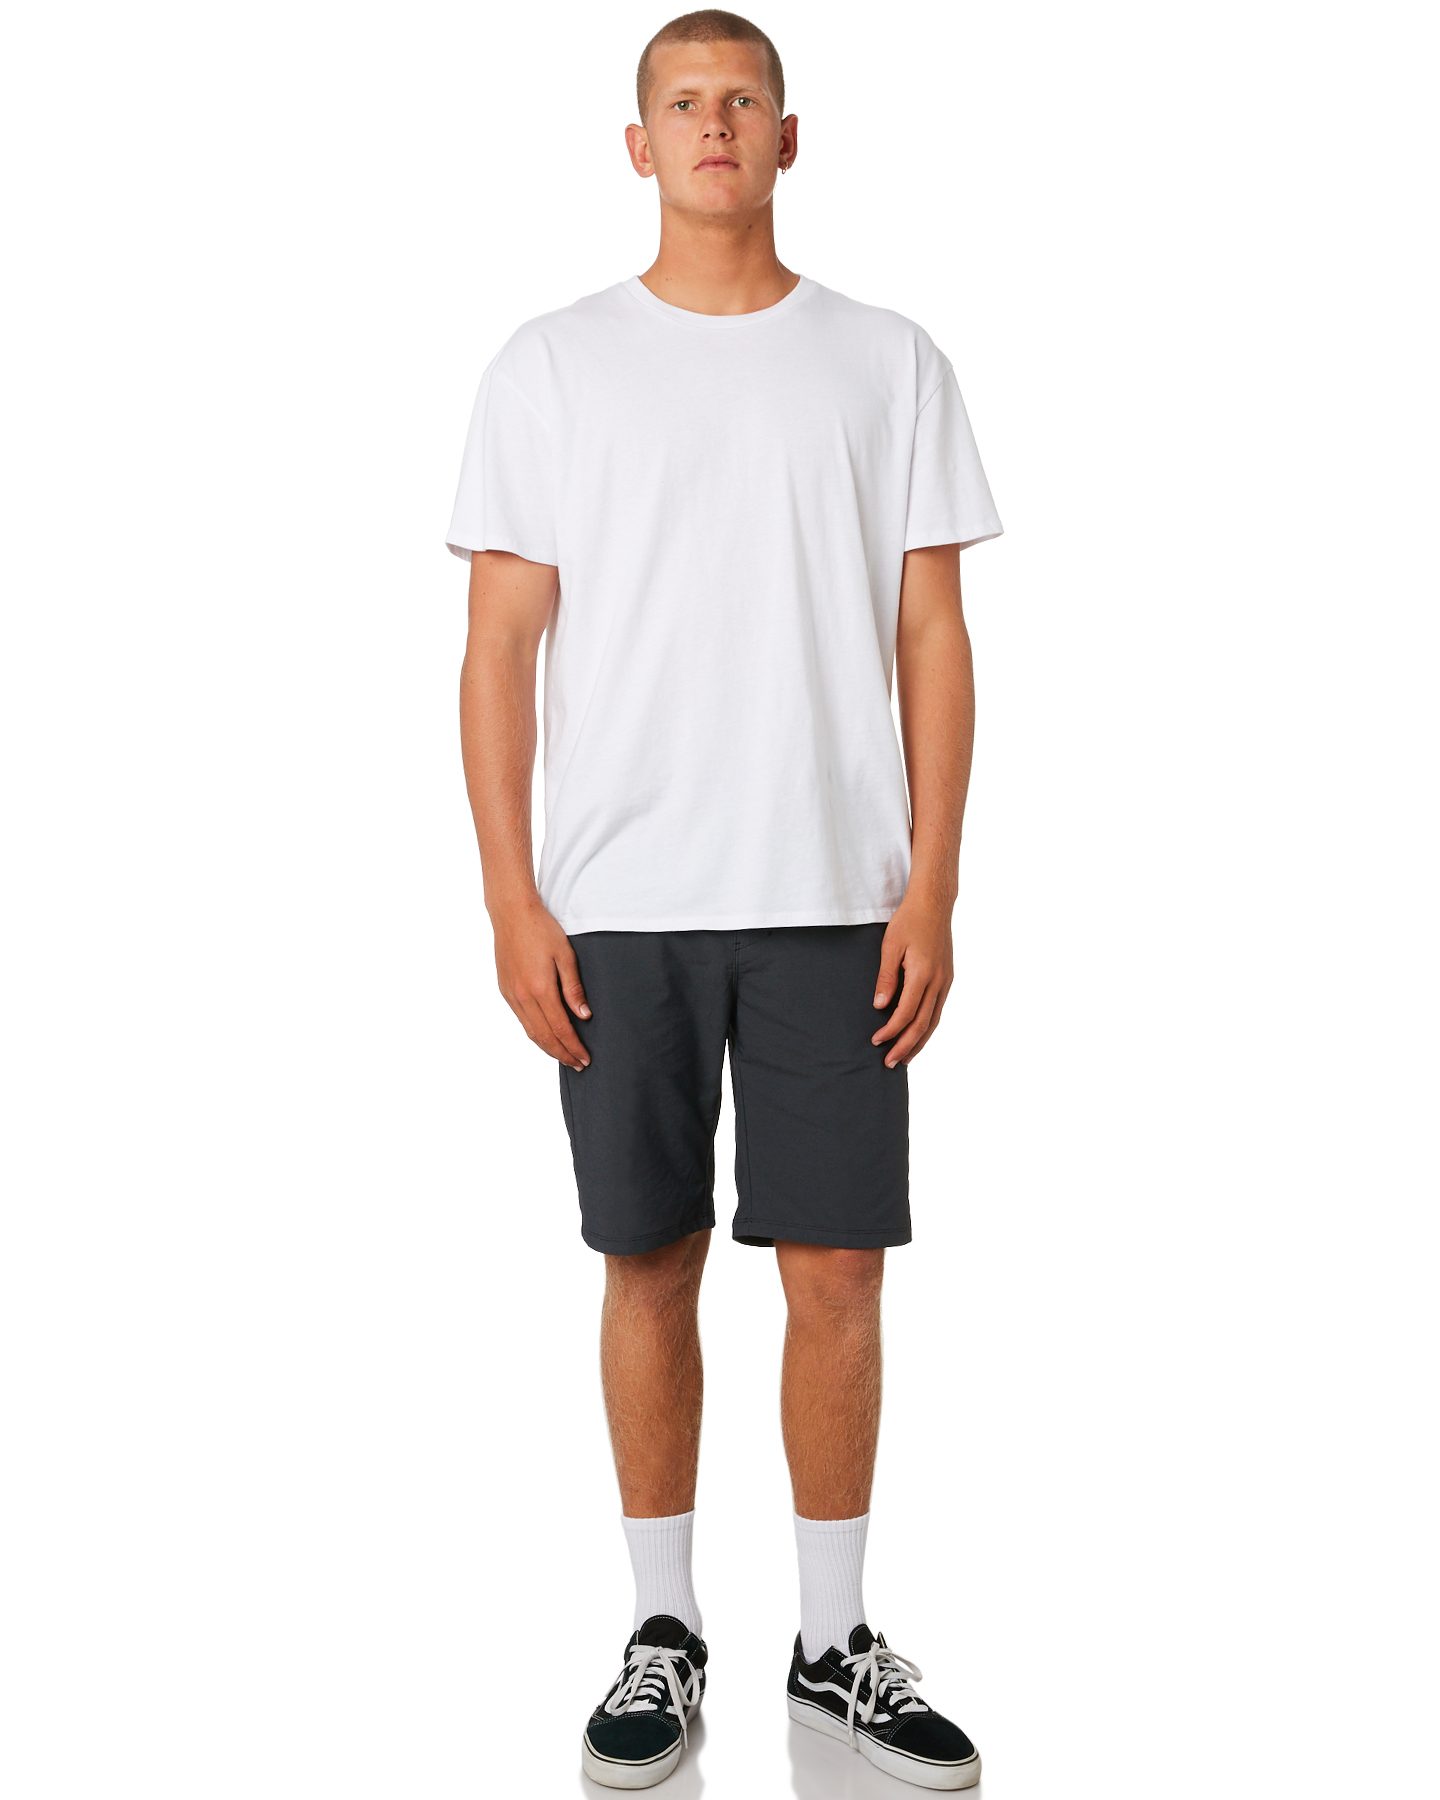 New-Hurley-Men-039-s-Dri-Fit-Chino-Short-21In-Mens-Short-Fitted-Spandex-Grey thumbnail 10